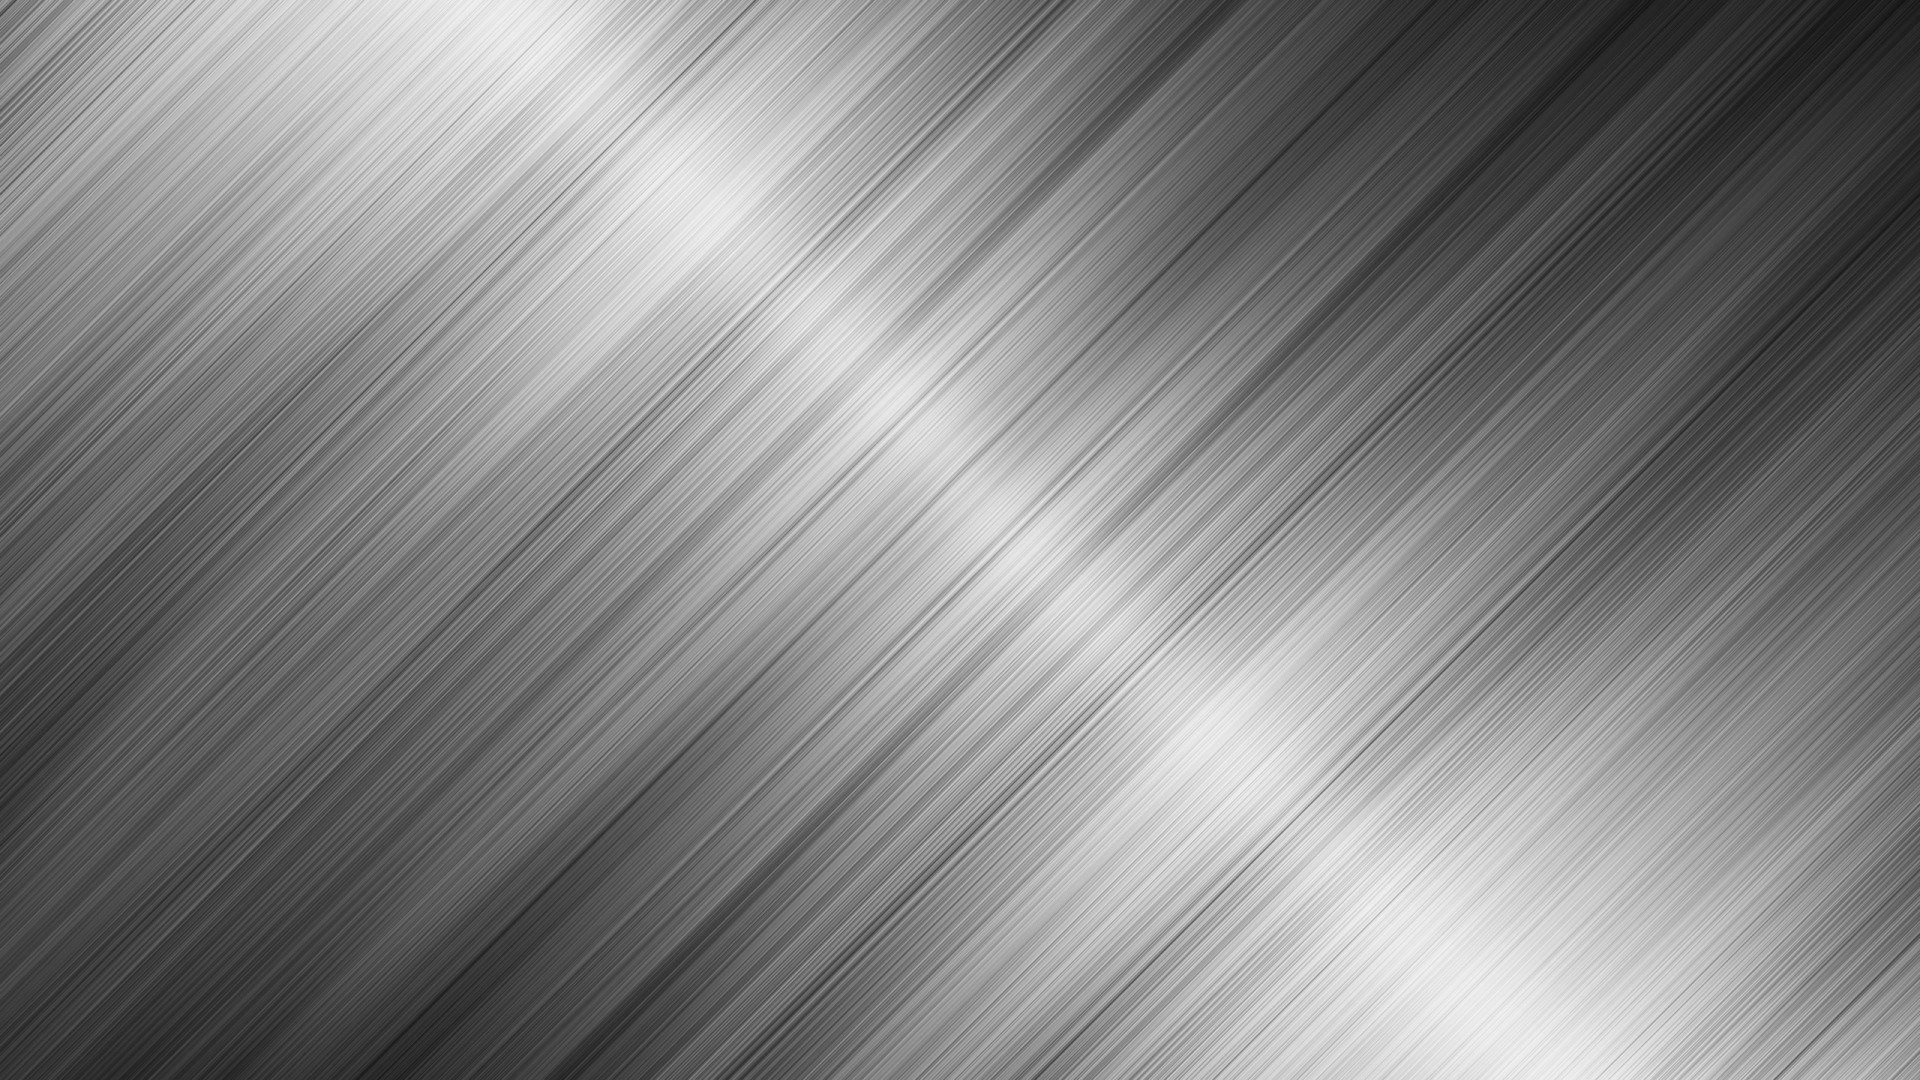 1920x1080 Metal lines stripes light shiny silver backgrounds .